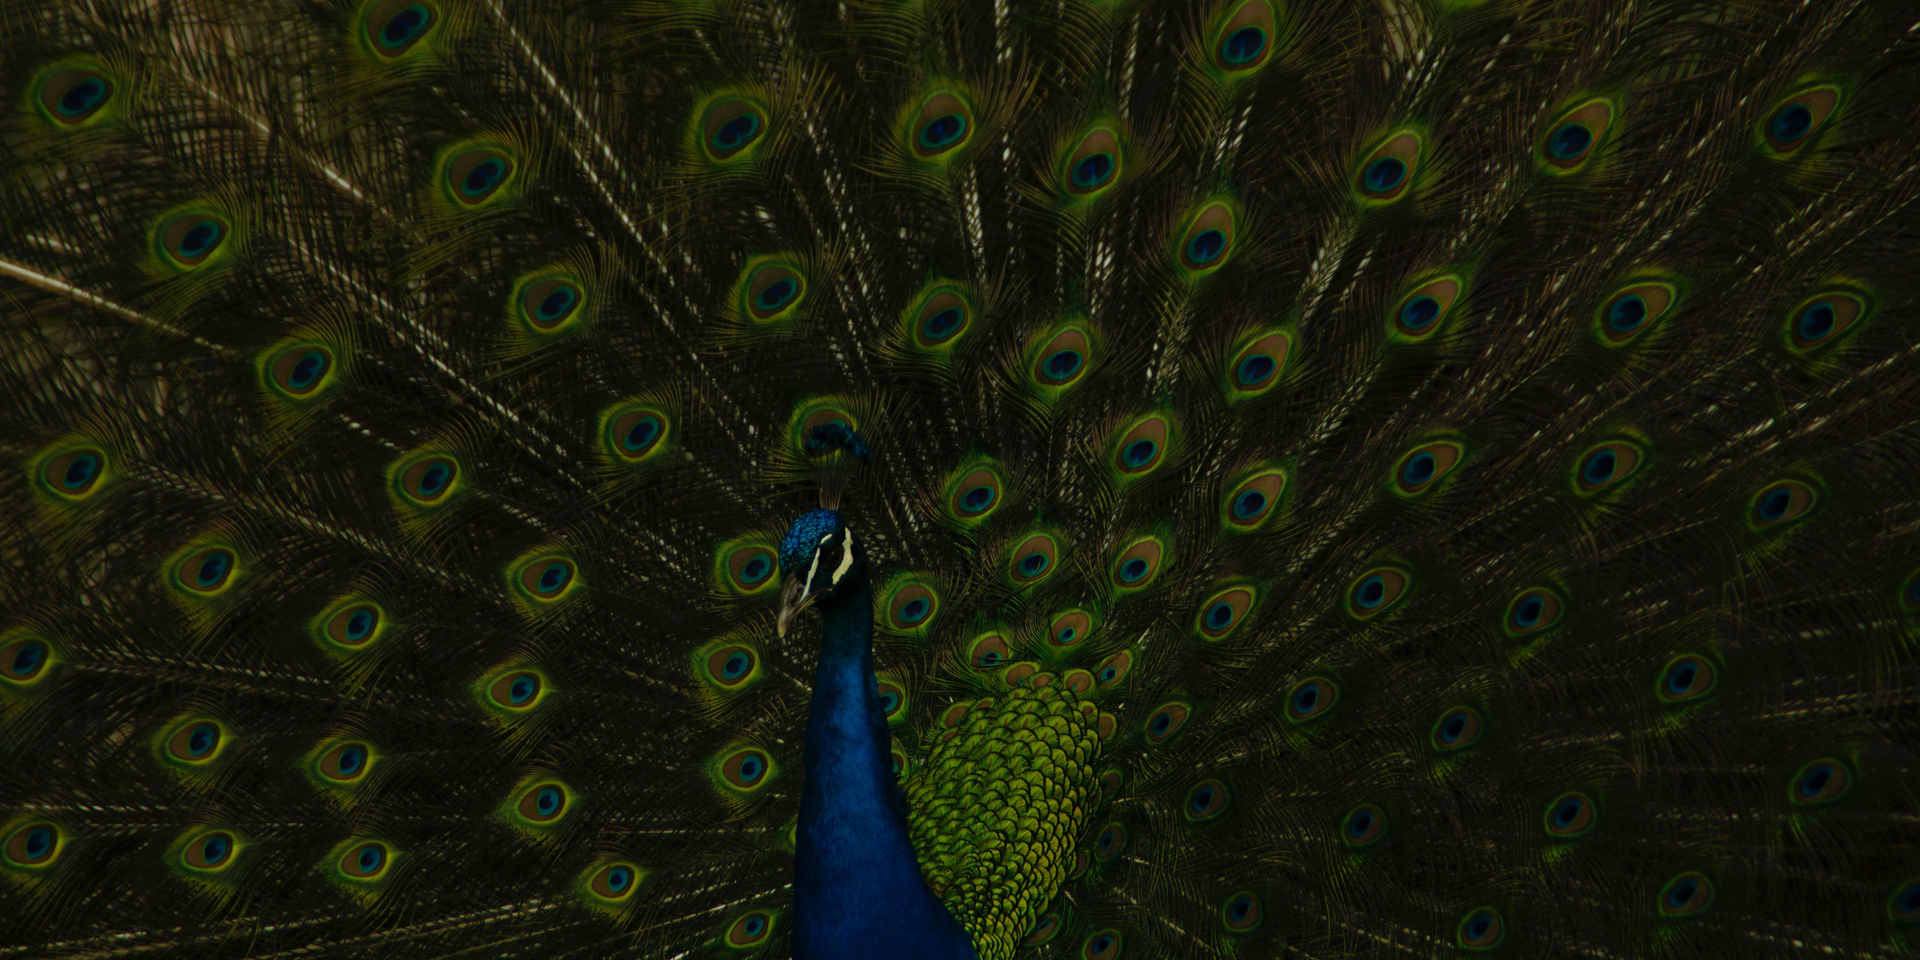 blue-peacock-in-close-up-photography-406